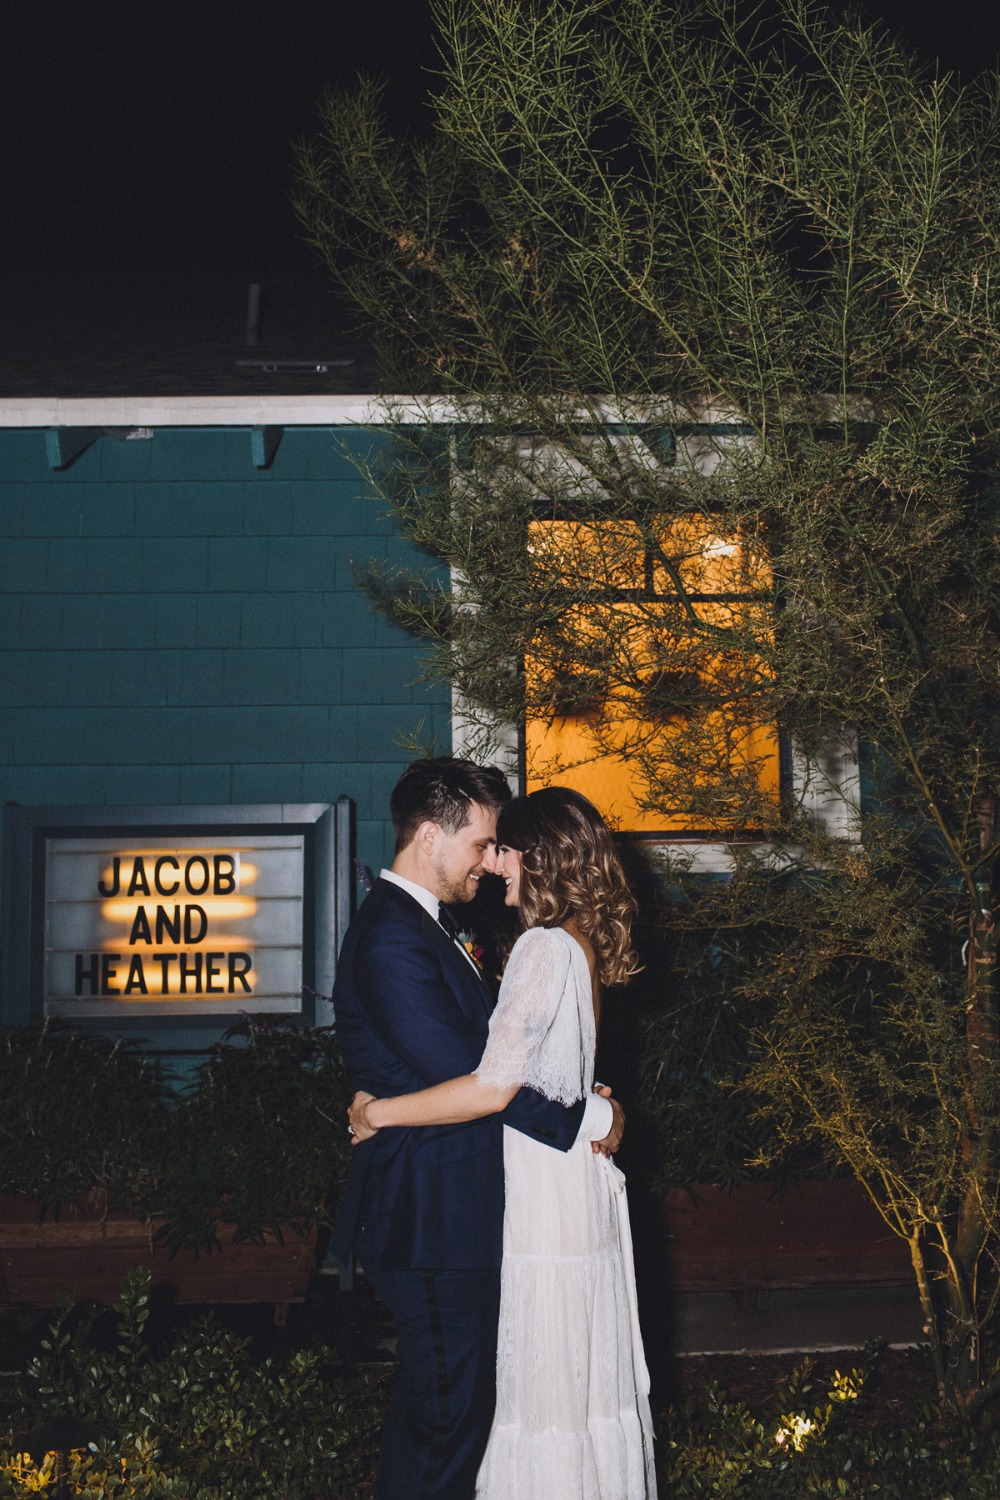 Wedding marquee sign